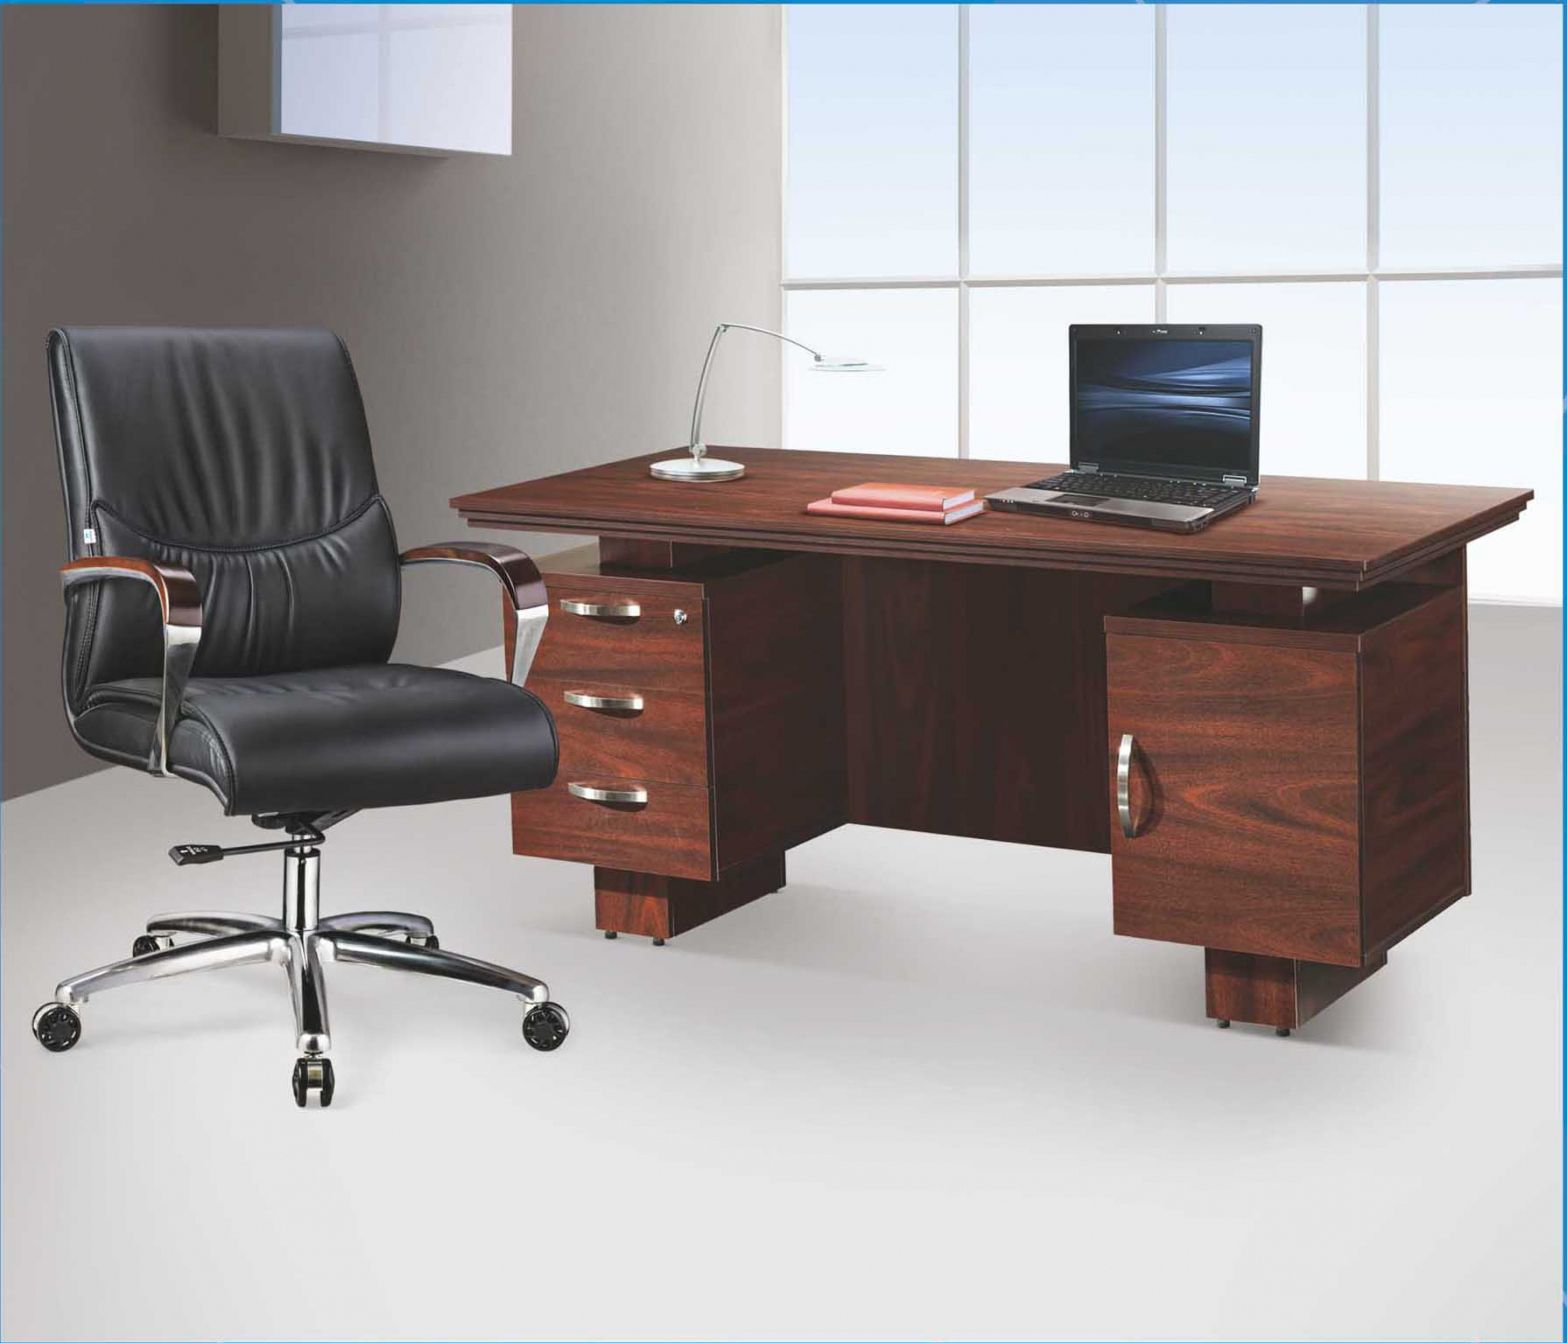 20 Office Table Online Luxury Home Office Furniture Check More At Http Adidas Best Home Office Desk Office Furniture Set Office Furniture Online